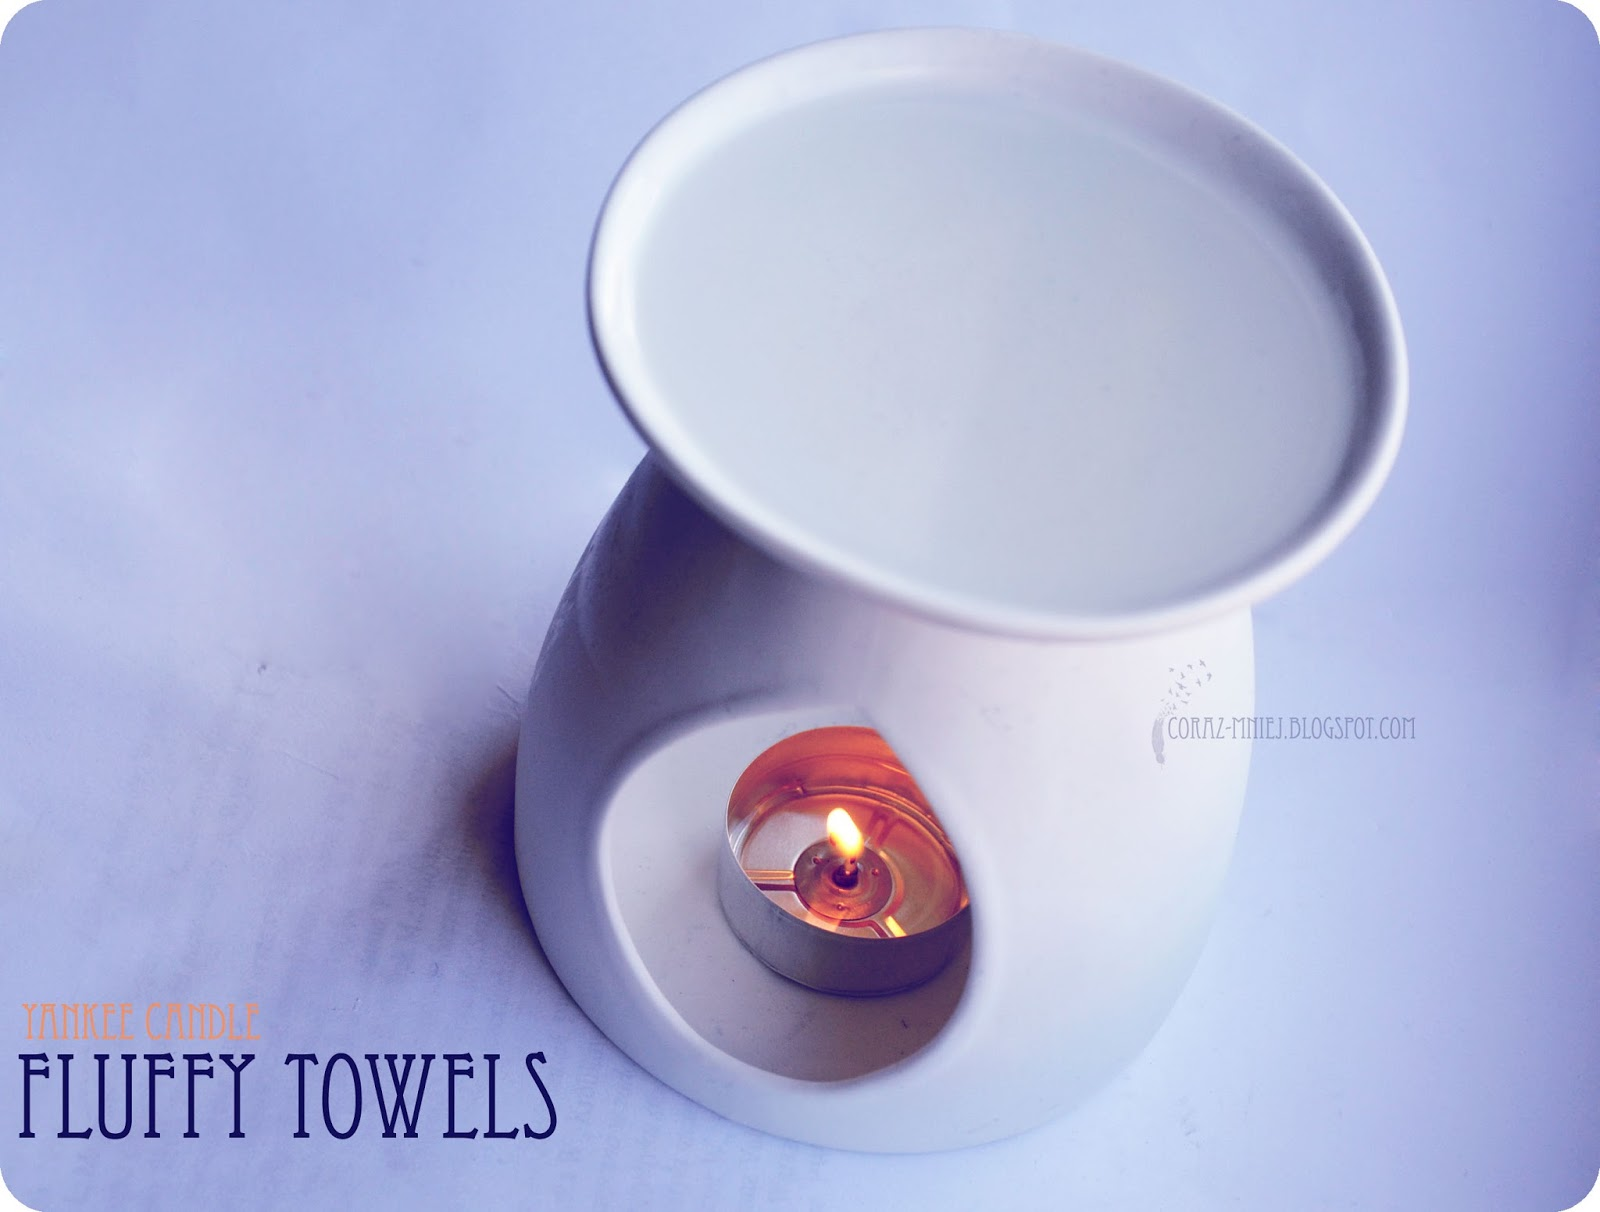 yankee-candle-fluffy-towels